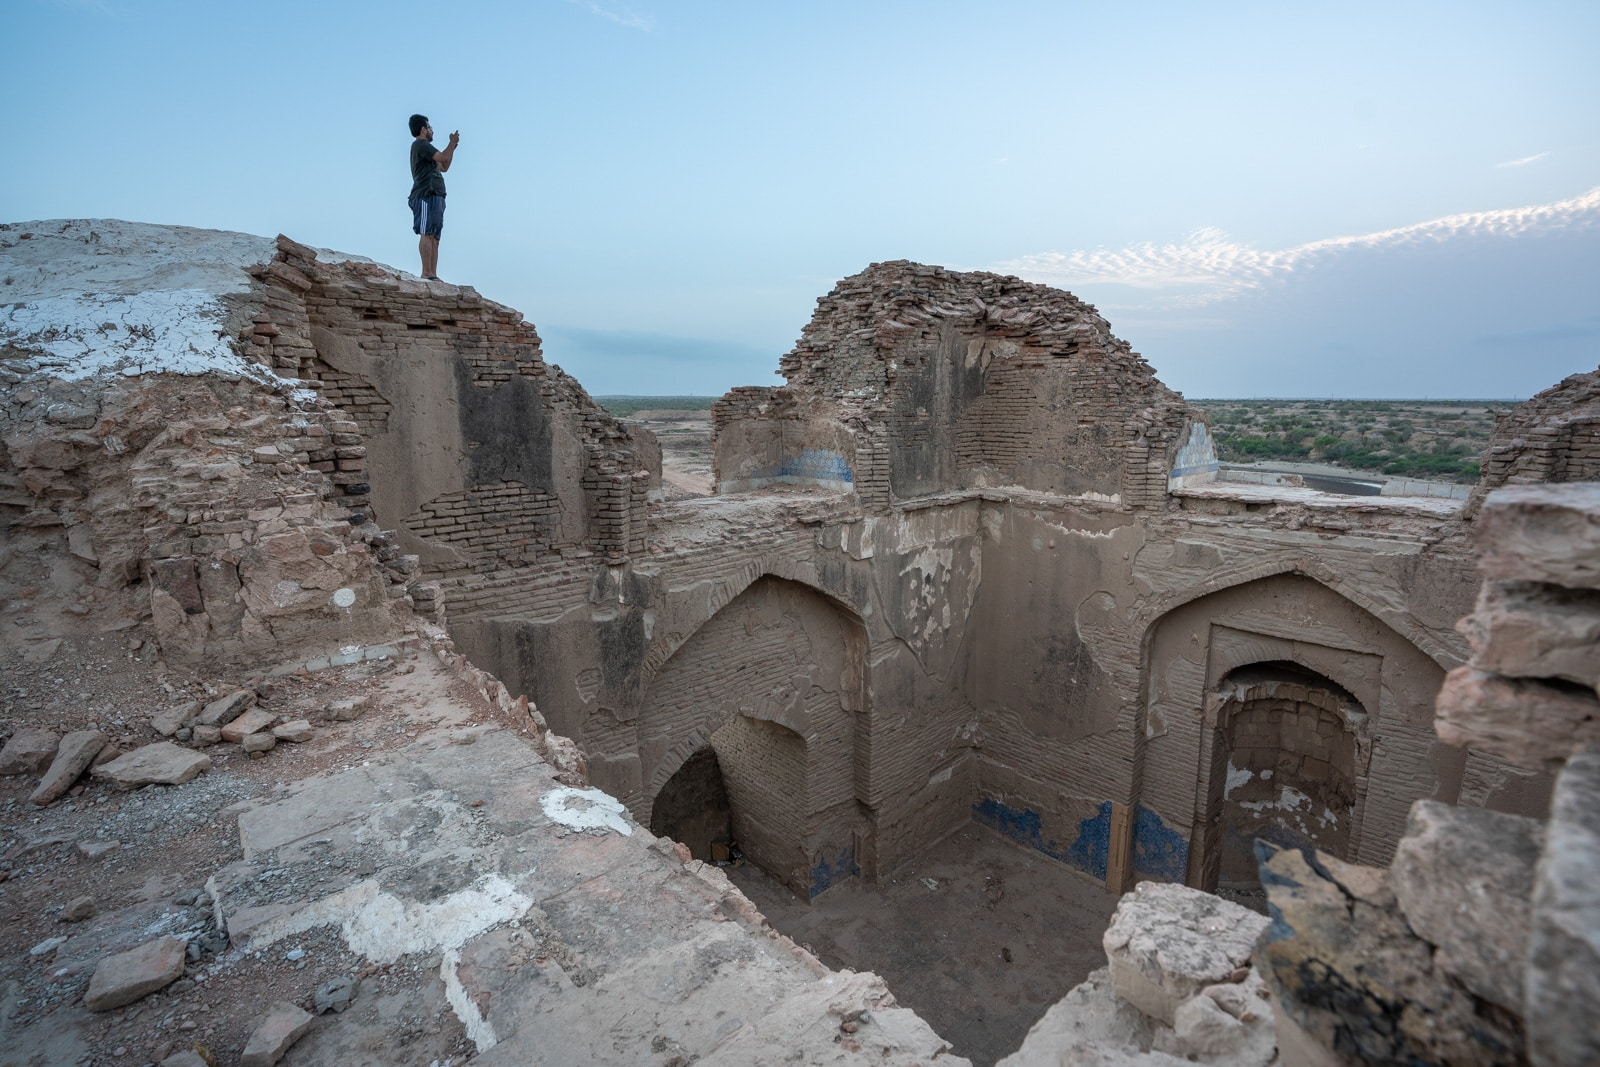 Sindh travel guide - Exploring an abandoned fort with Aamish near Thatta - Lost With Purpose travel blog